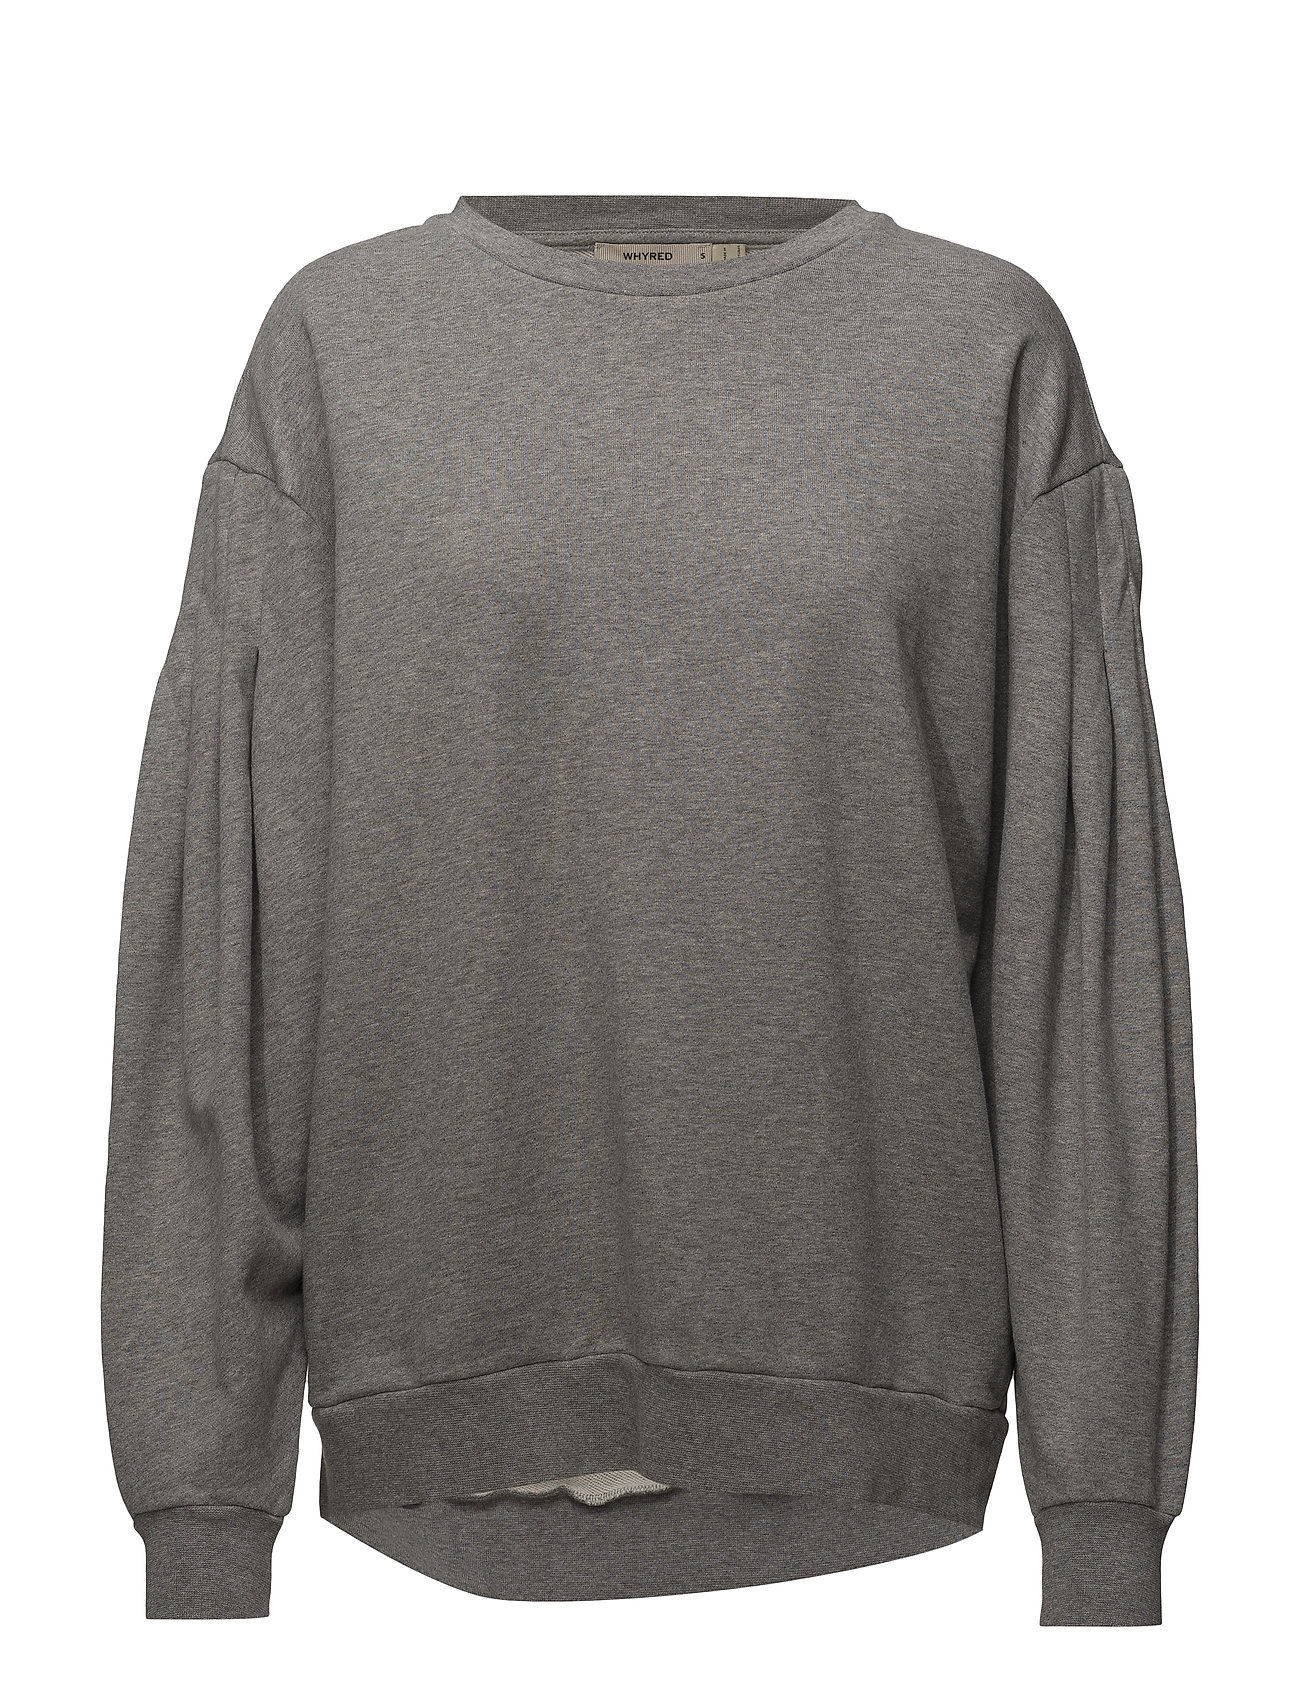 Whyred FLORA SWEATER PUFF - GREY MÉLANGE